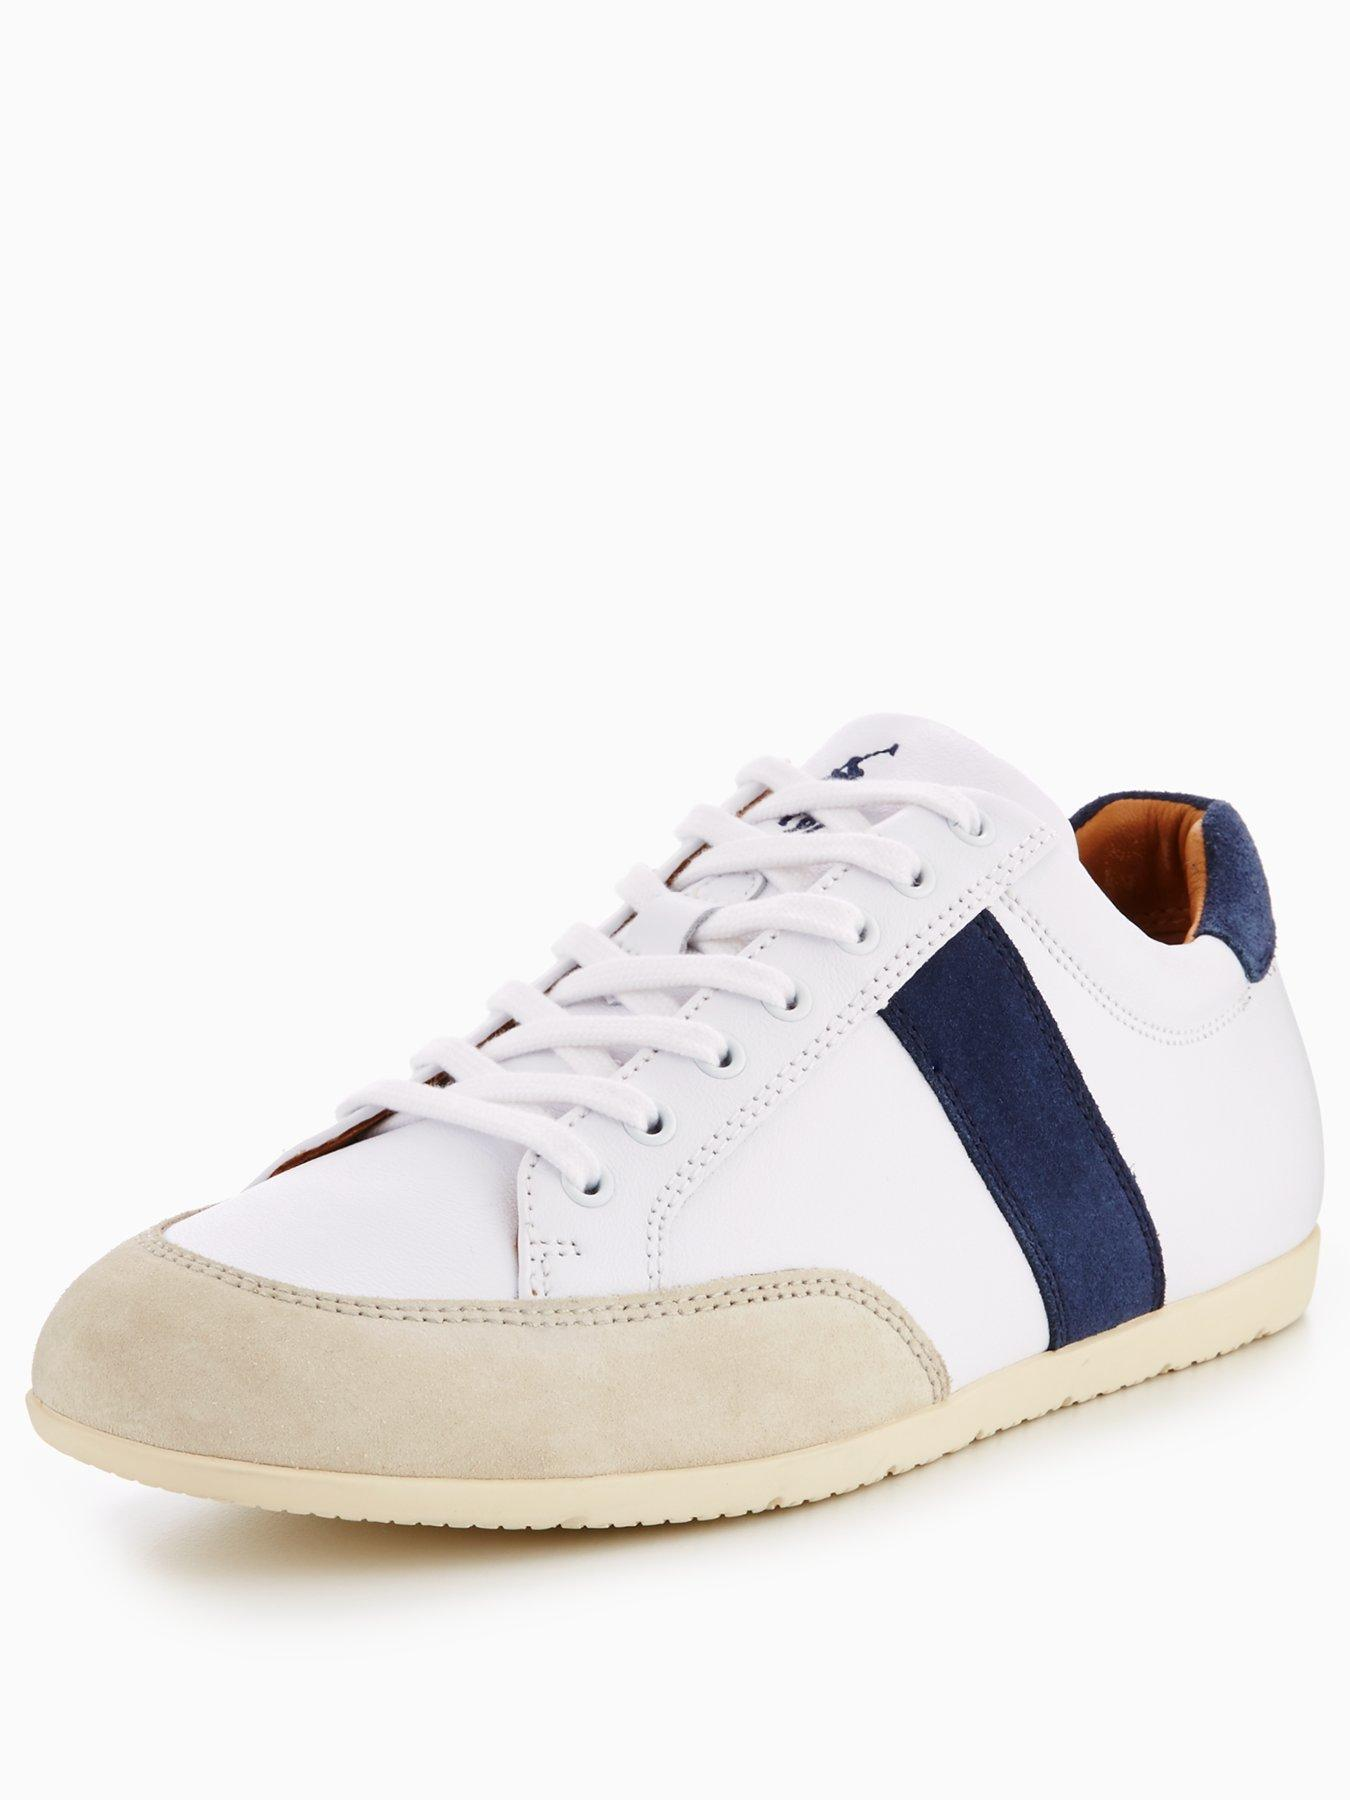 cheap polo ralph lauren shoes uk outlet prong covers for dishwas